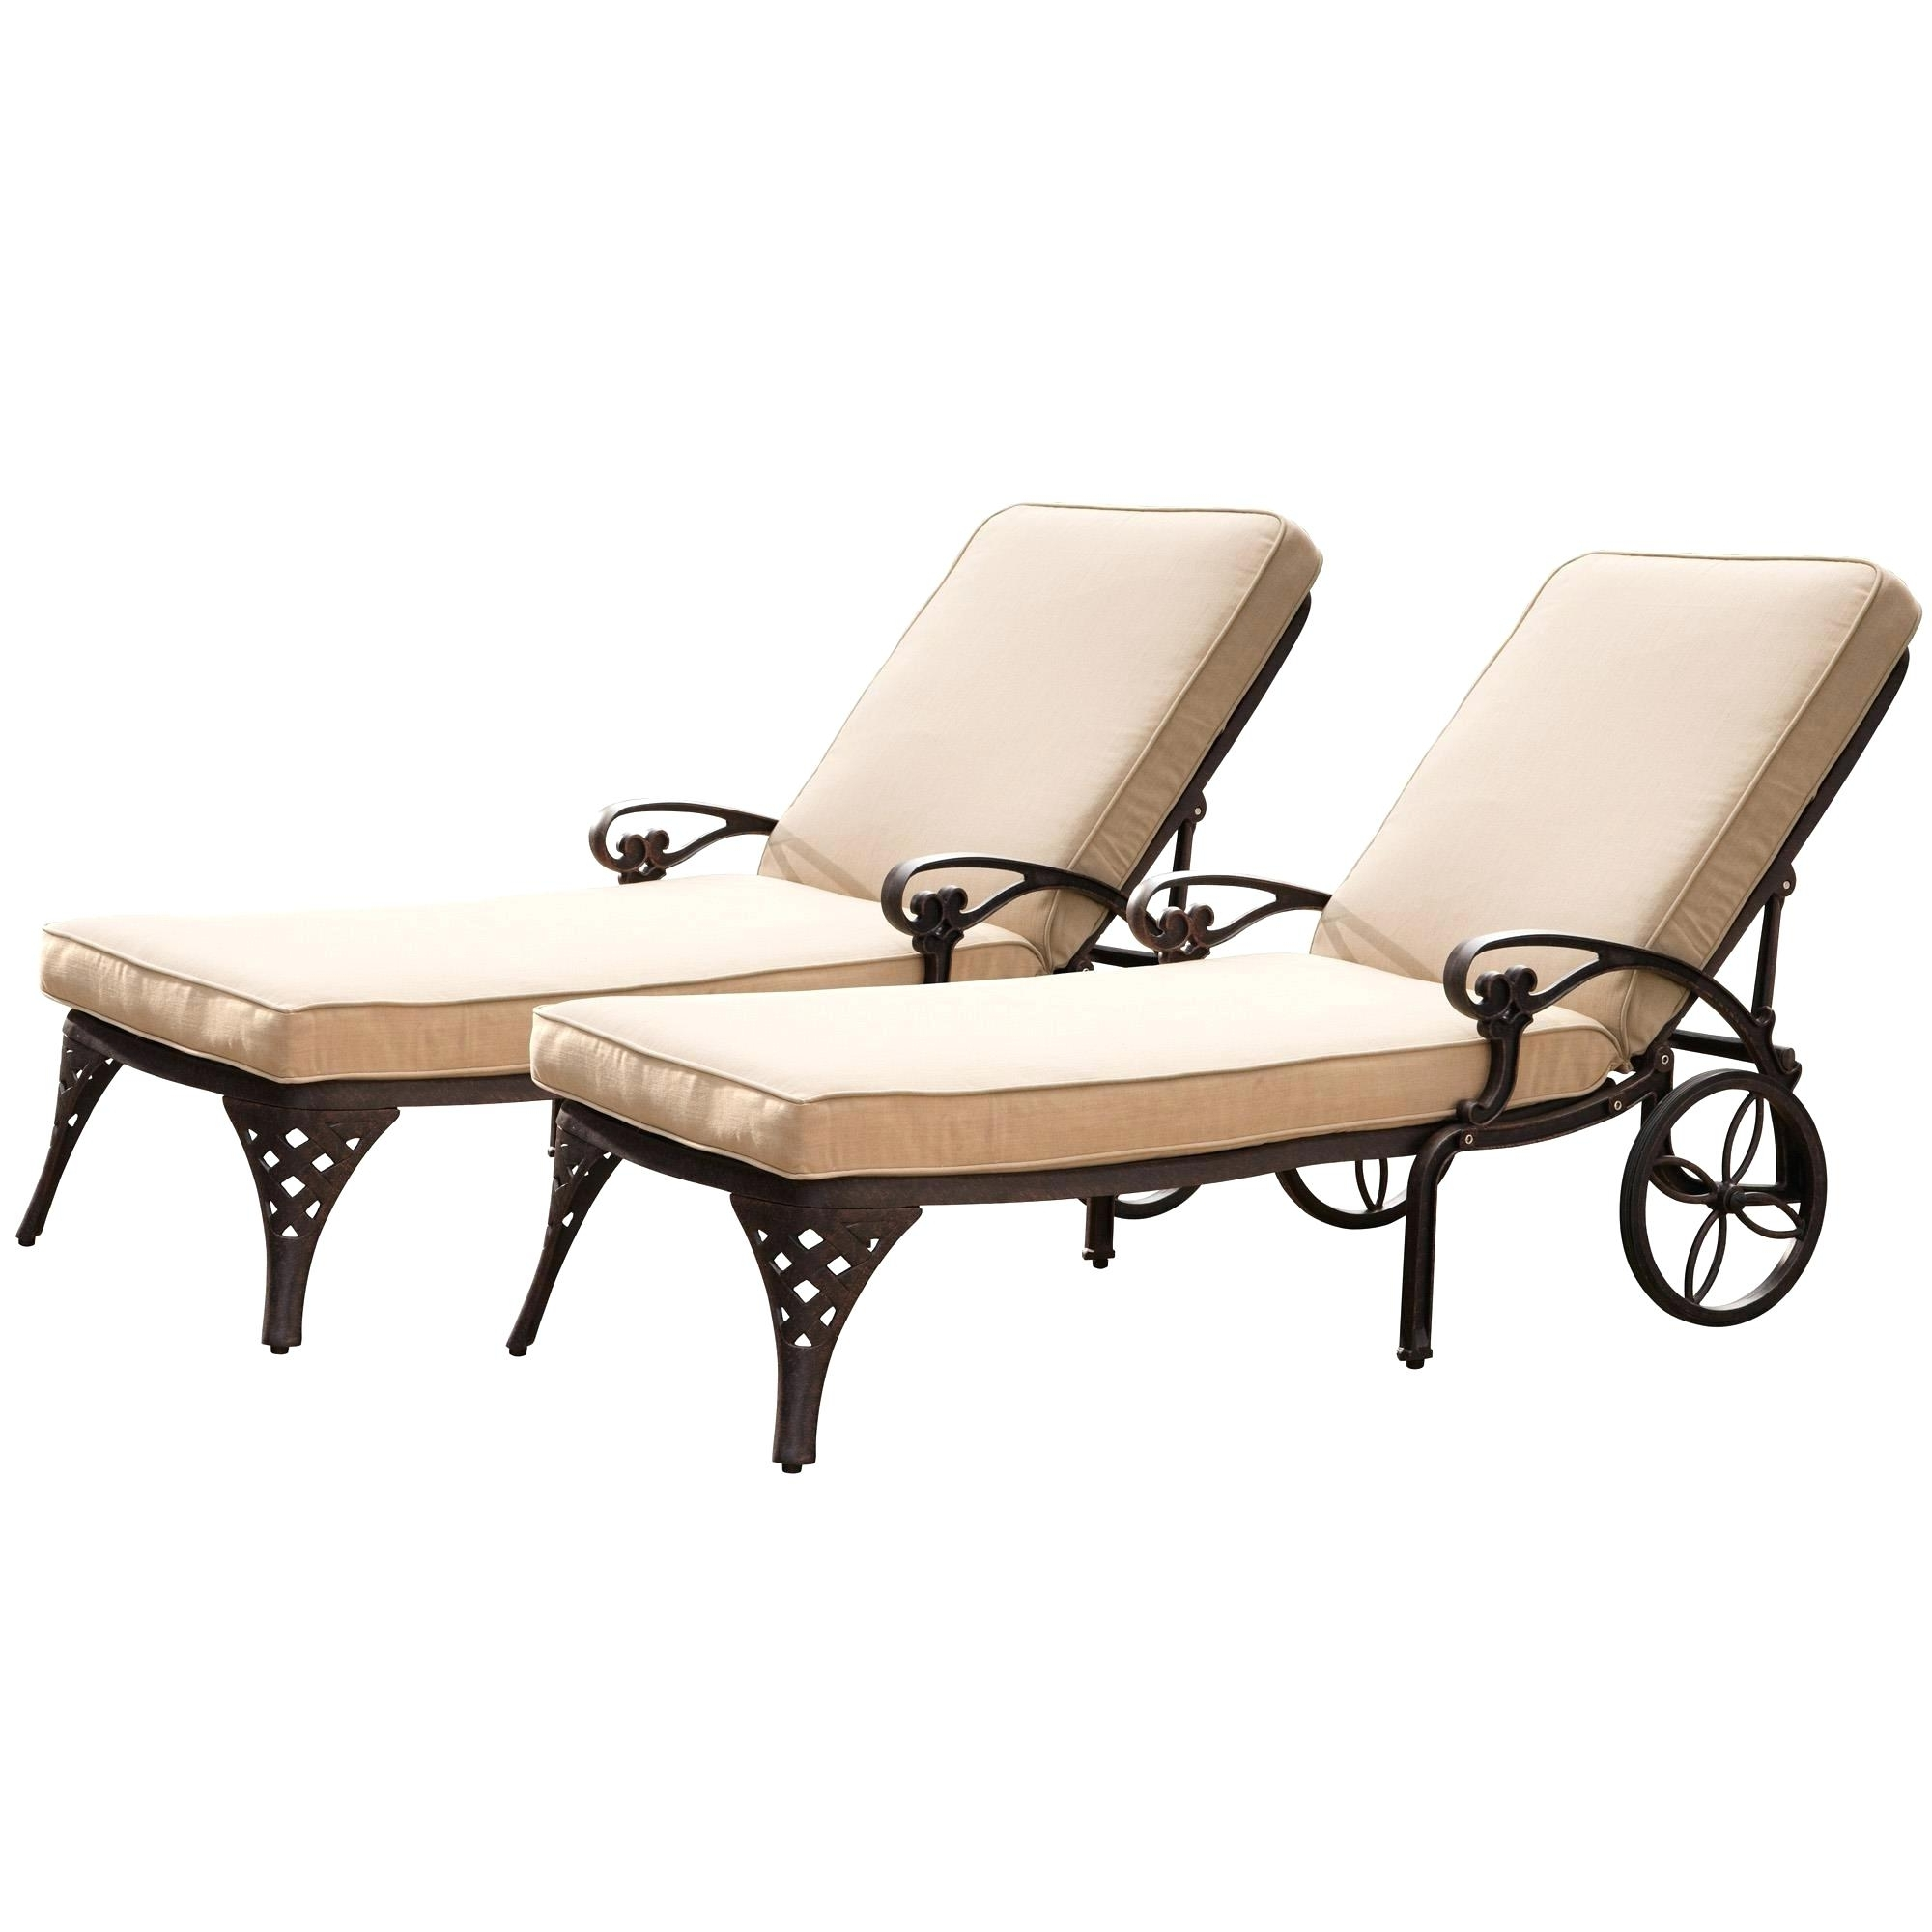 Inexpensive Outdoor Chaise Lounge Chairs Throughout Preferred Inexpensive Pool Lounge Chairs Image Of Chaise Lounge Sofa For (Gallery 11 of 15)